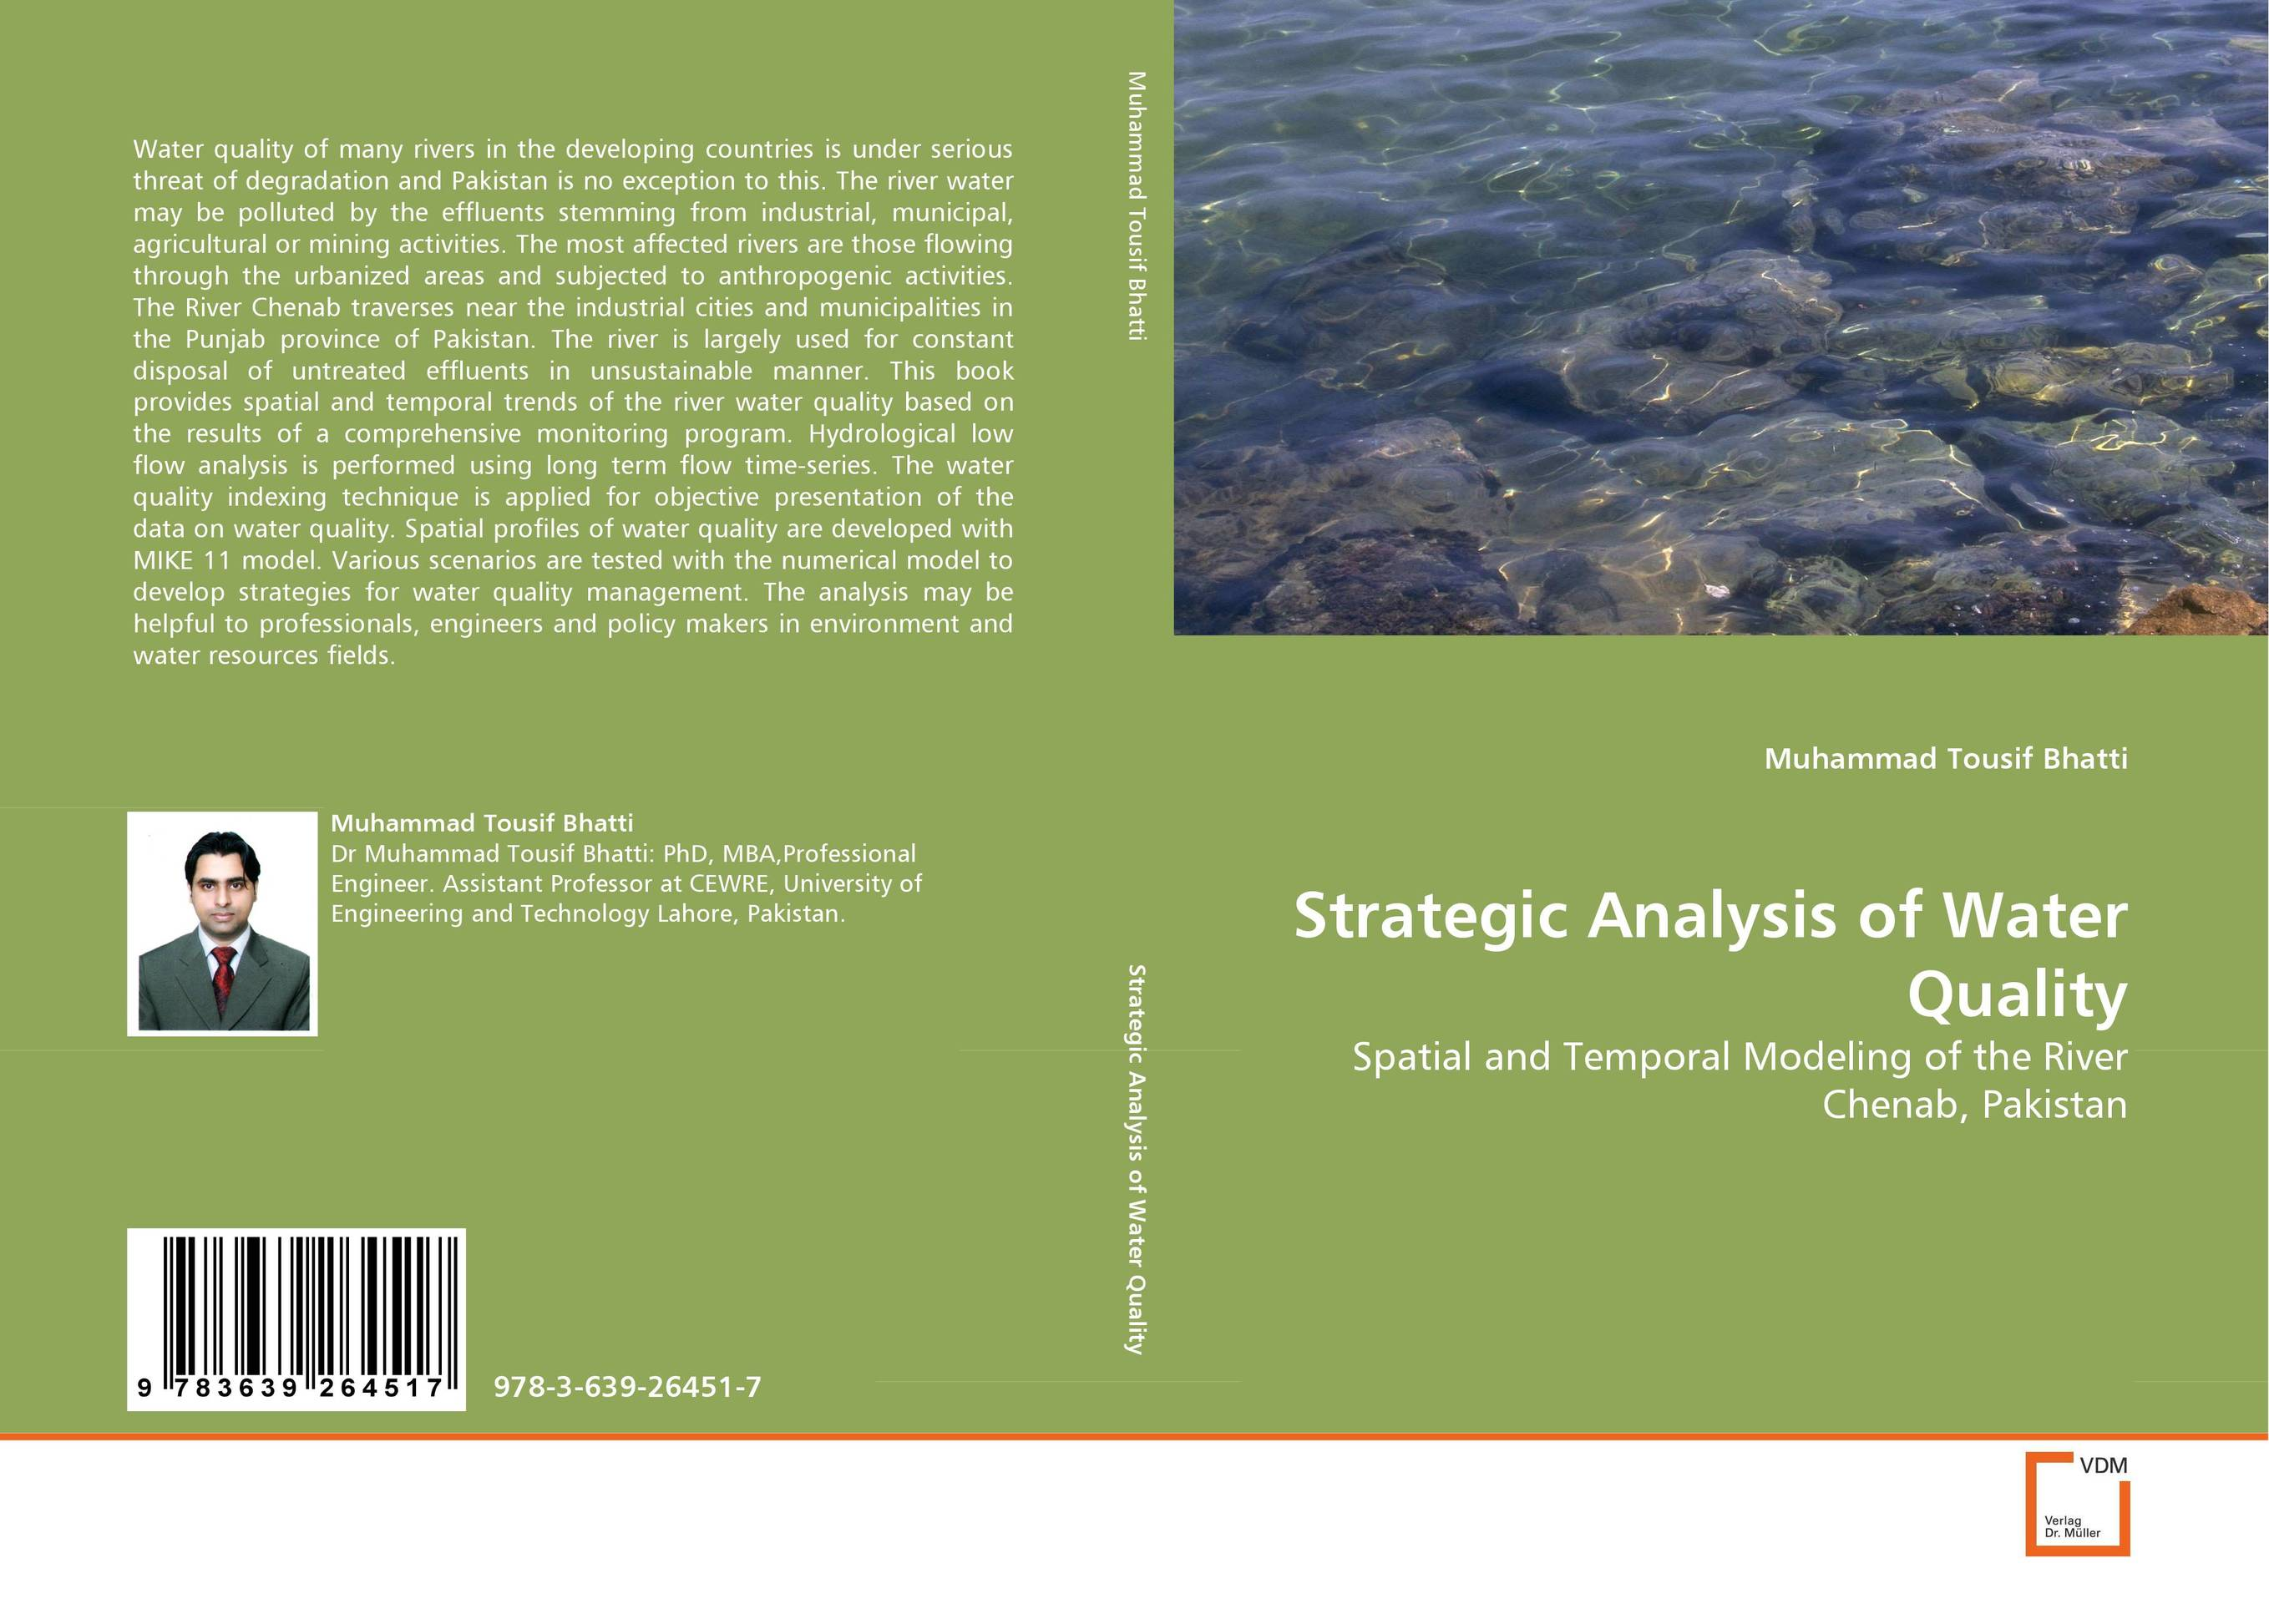 Strategic Analysis of Water Quality effects of dams on river water quality